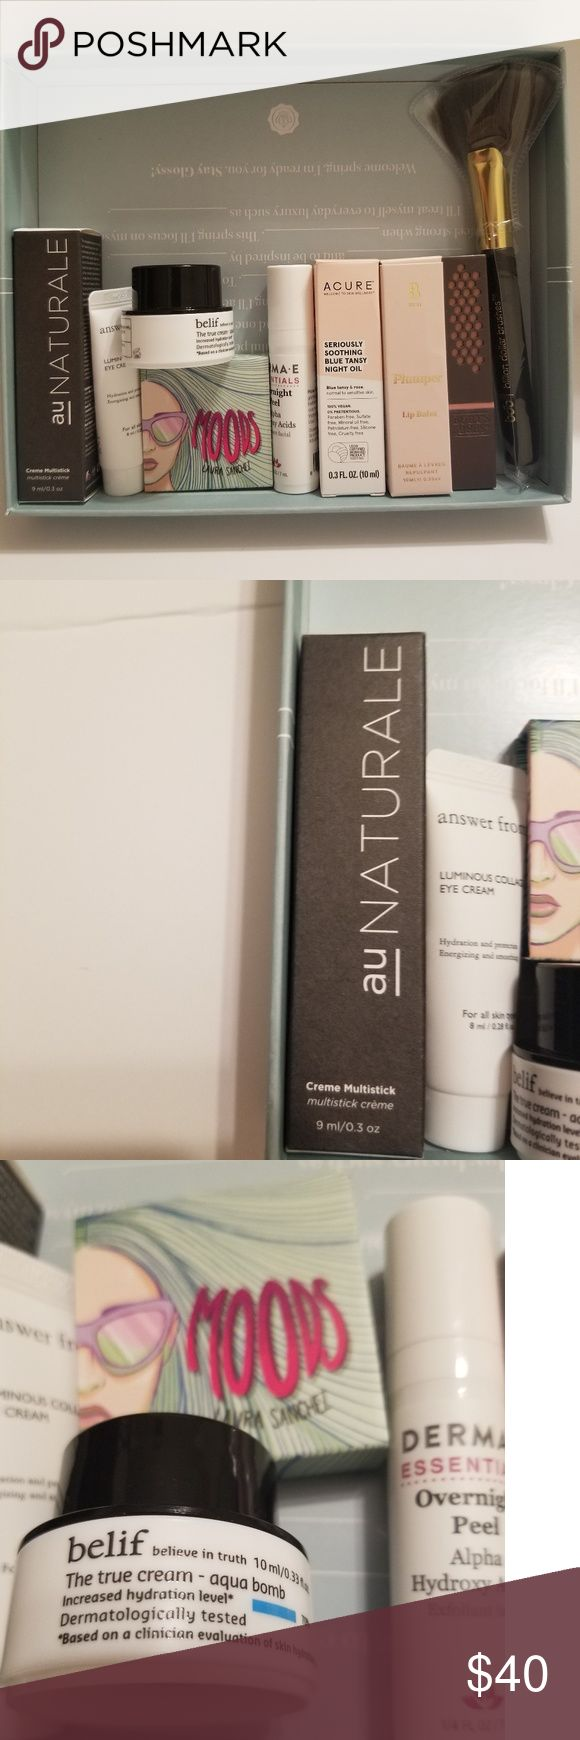 Beauty bundle Au Naturale Anywhere Creme Multistick for